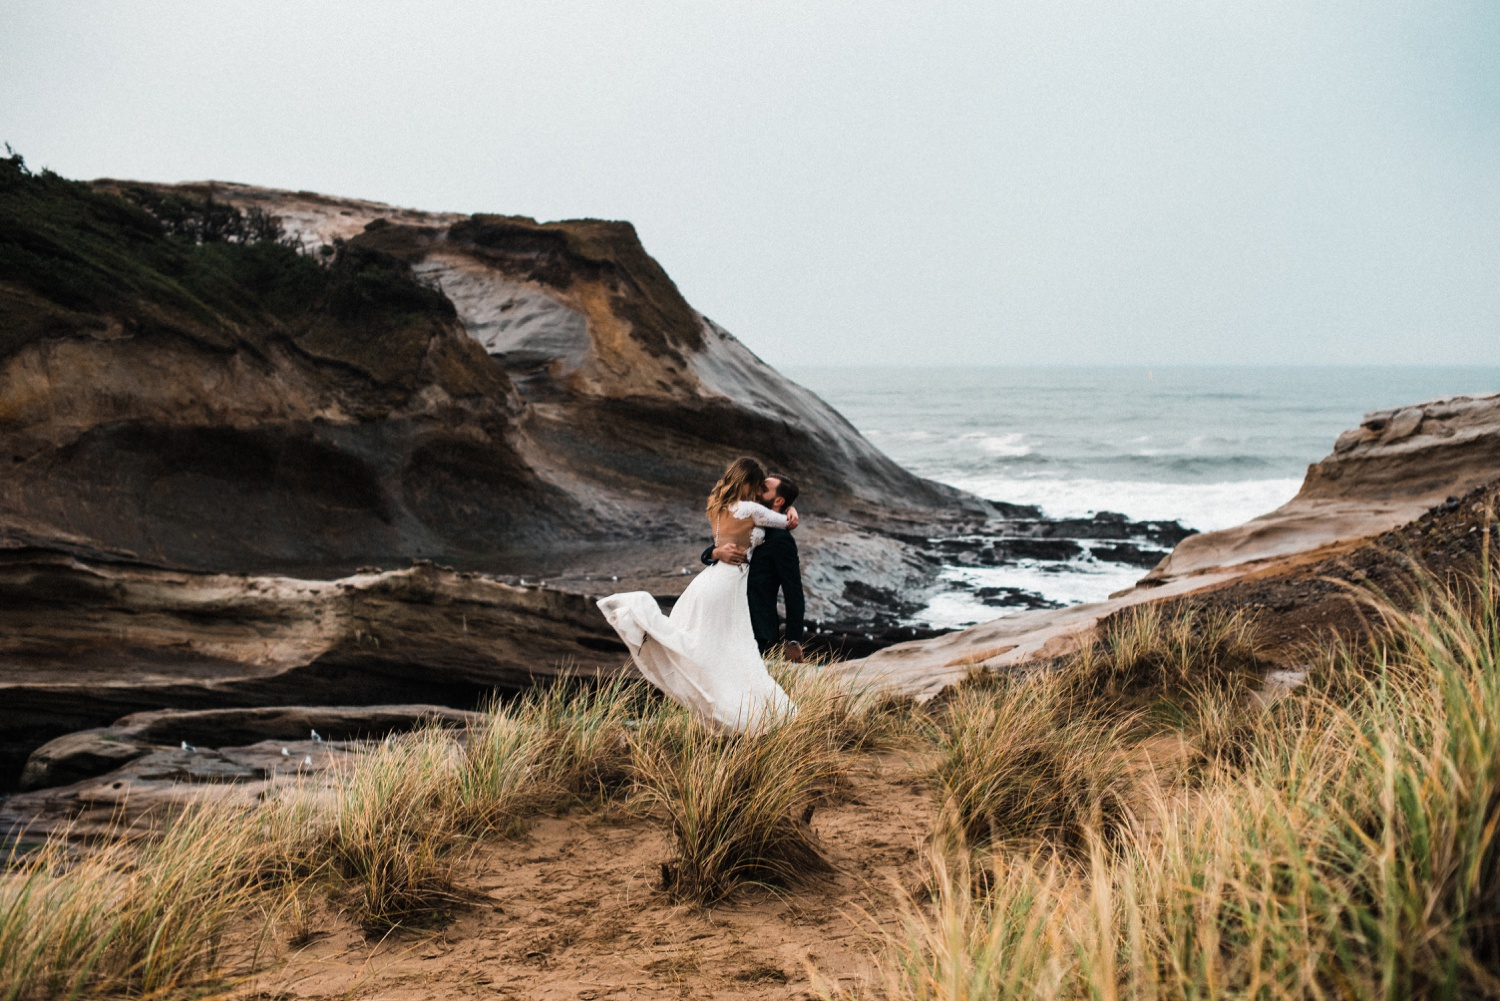 Oregon_Coast_Elopement_Wedding_The_Foxes_Photography_127.jpg